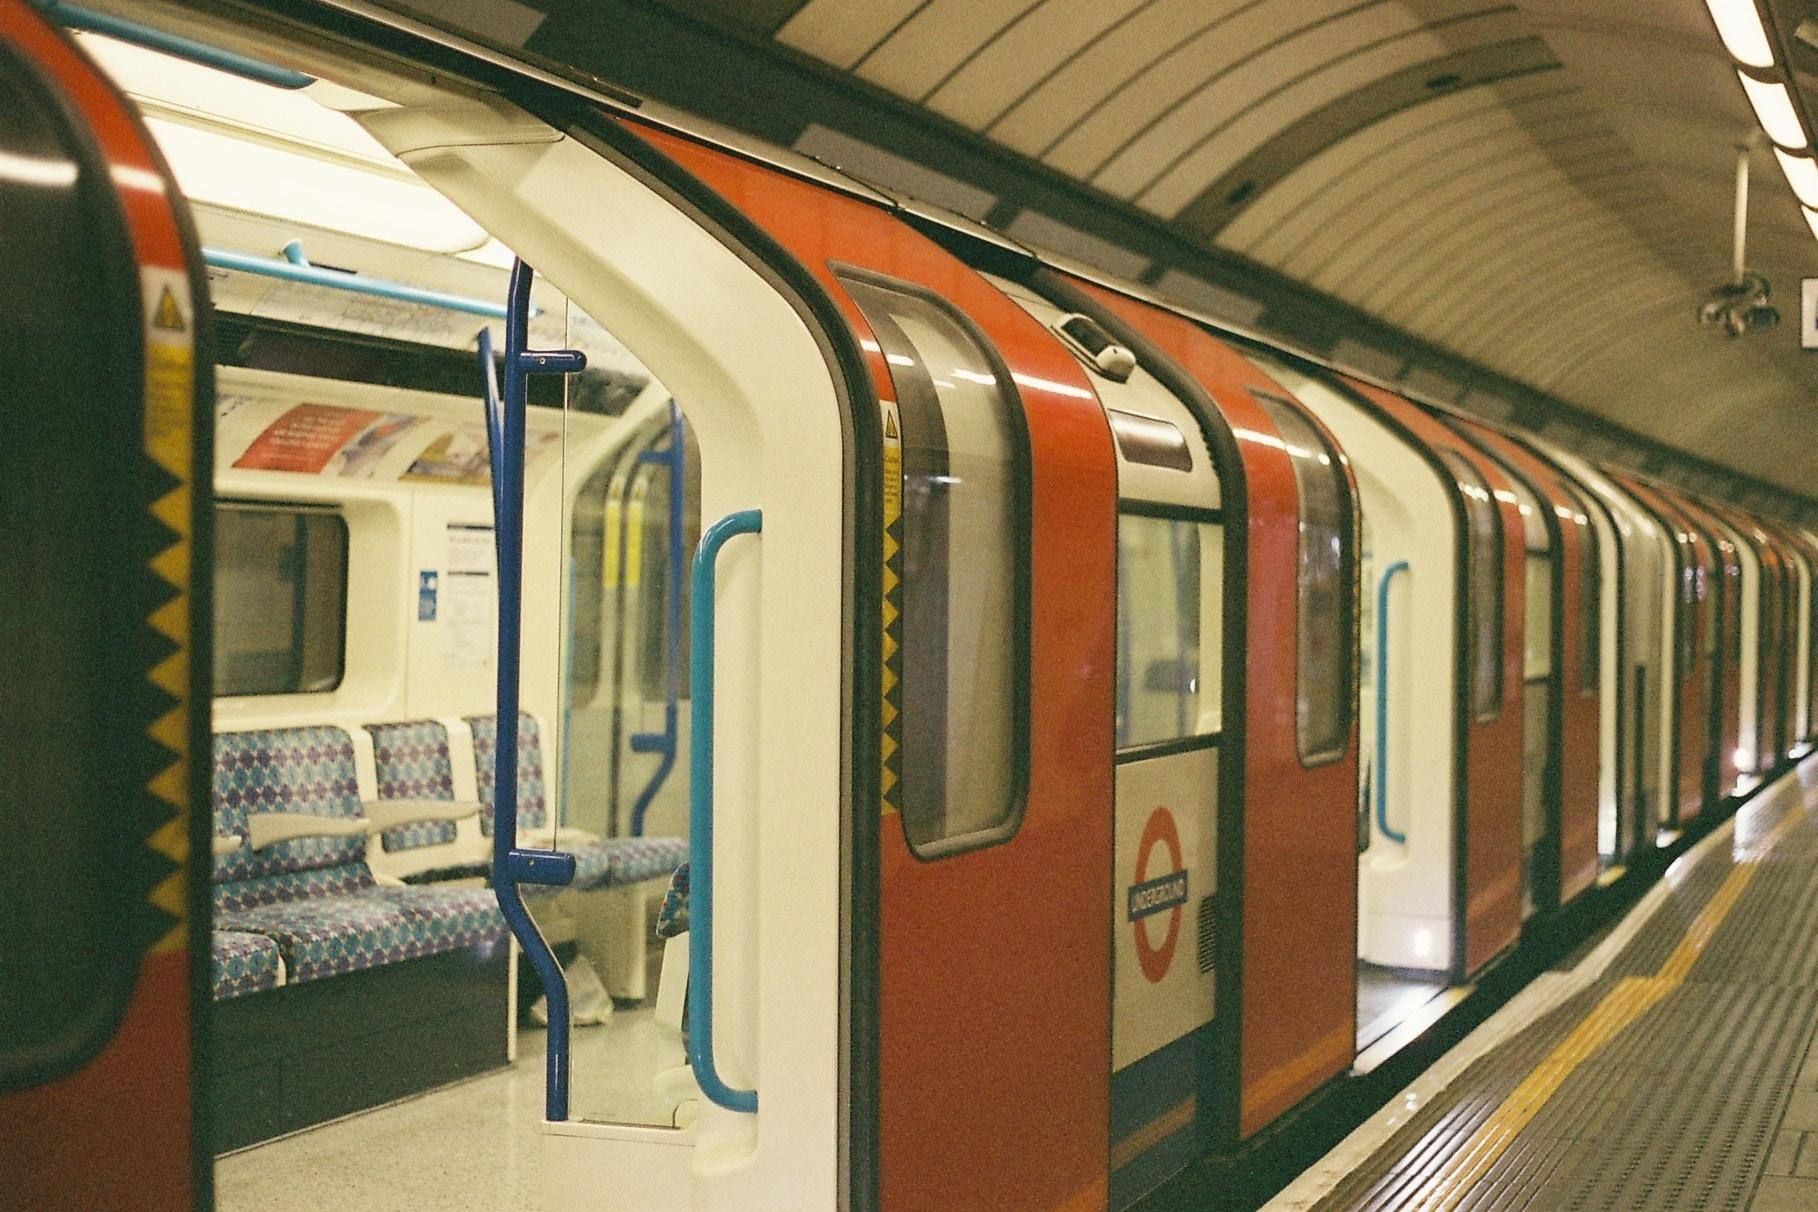 The tube stationary at the platform with the doors open